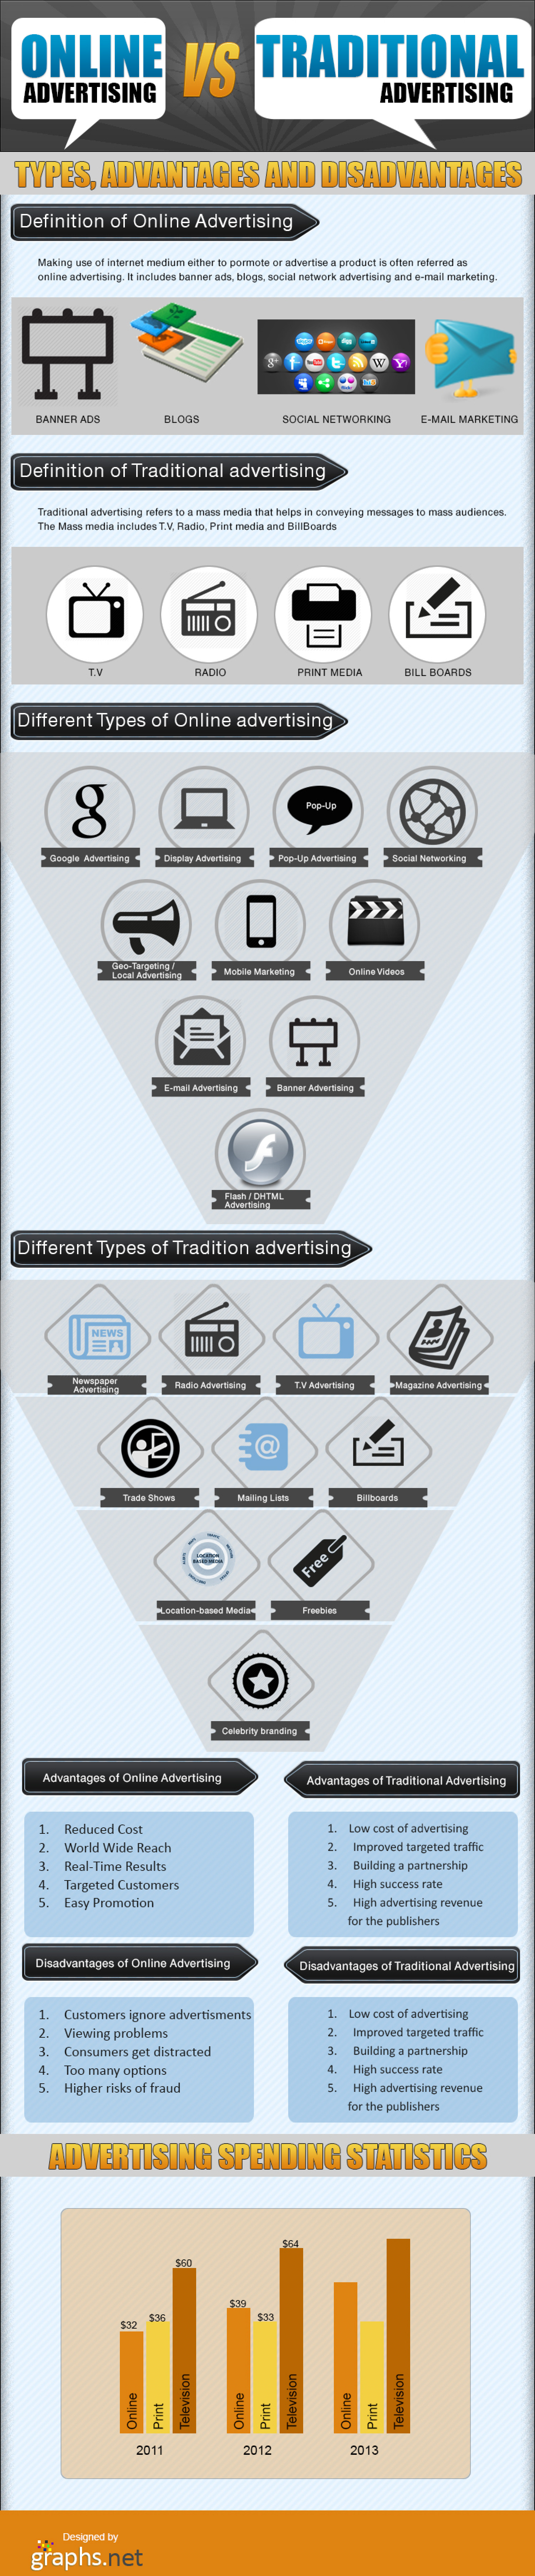 Online VS Traditional Advertisements Infographic